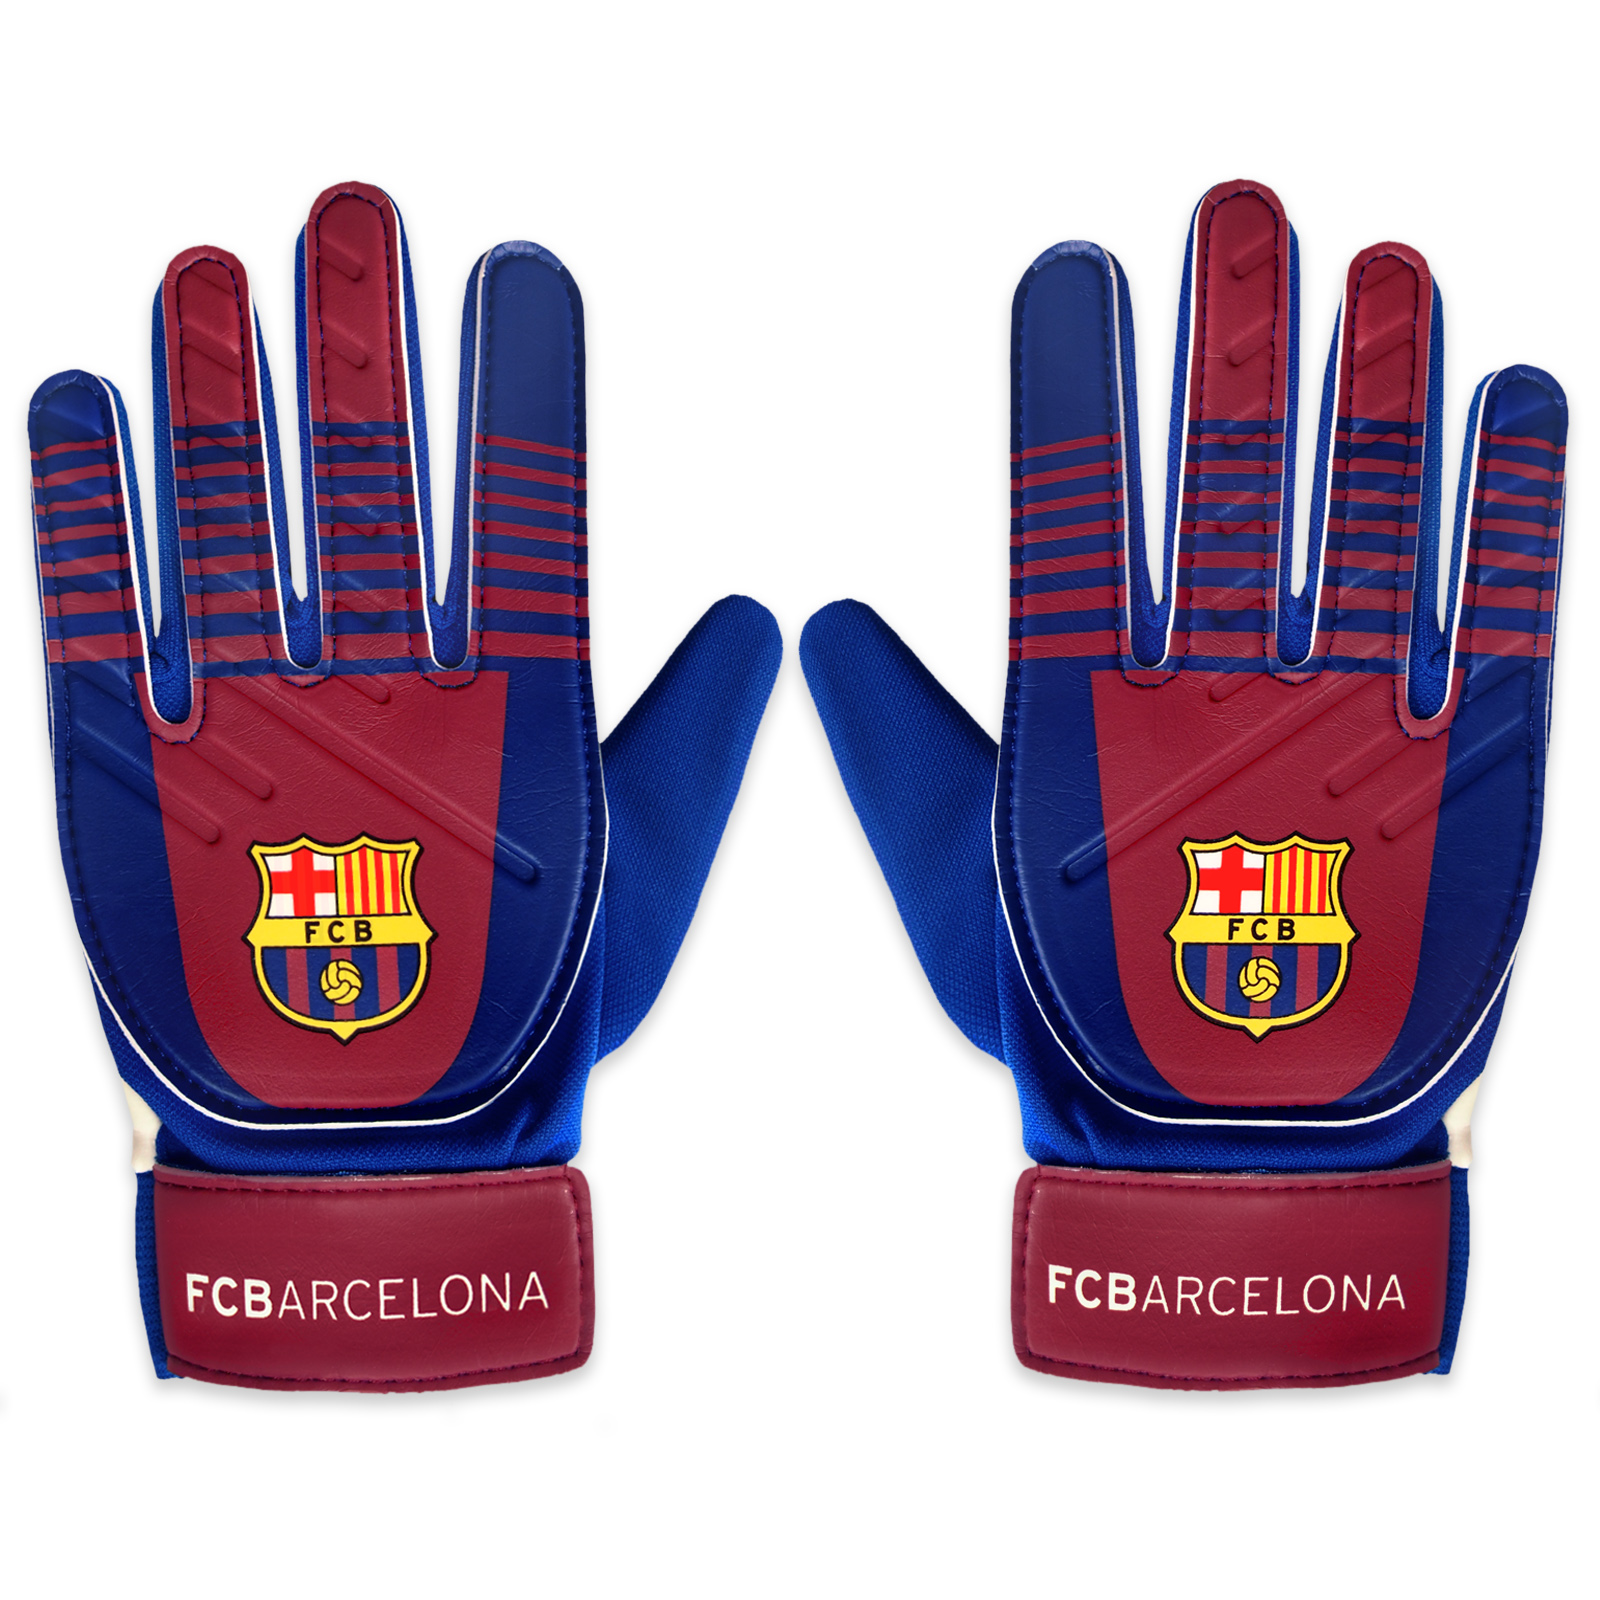 FC Barcelona Official Football Gift Kids Youths Goalkeeper Goalie Gloves b3db698759